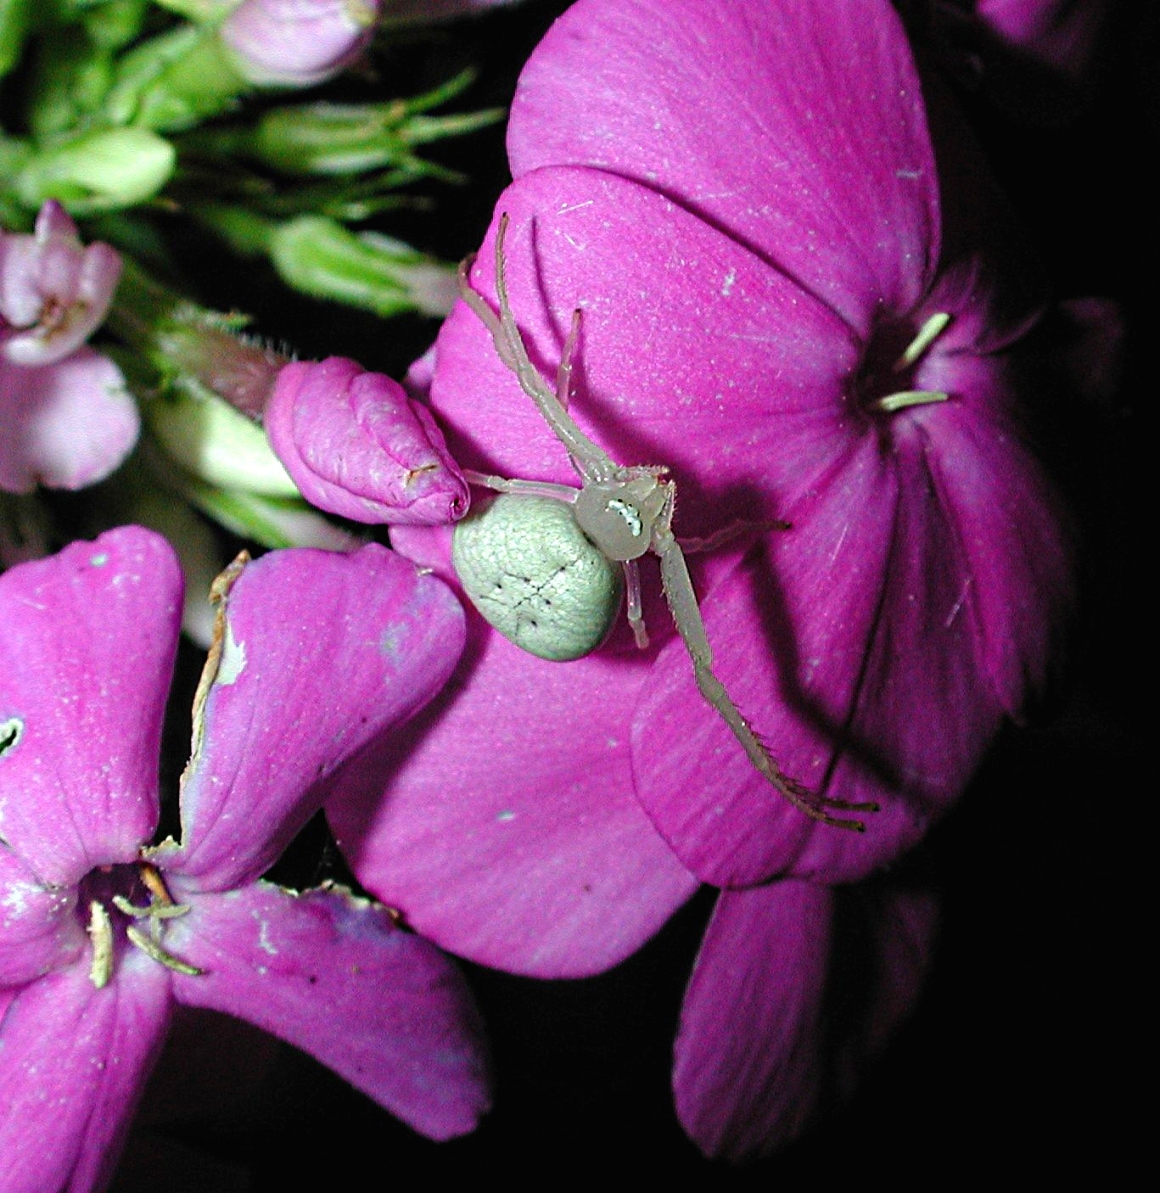 Crabby and waiting! Crab Spider in Phlox Flowers. Photo by Thomas Peace 2014